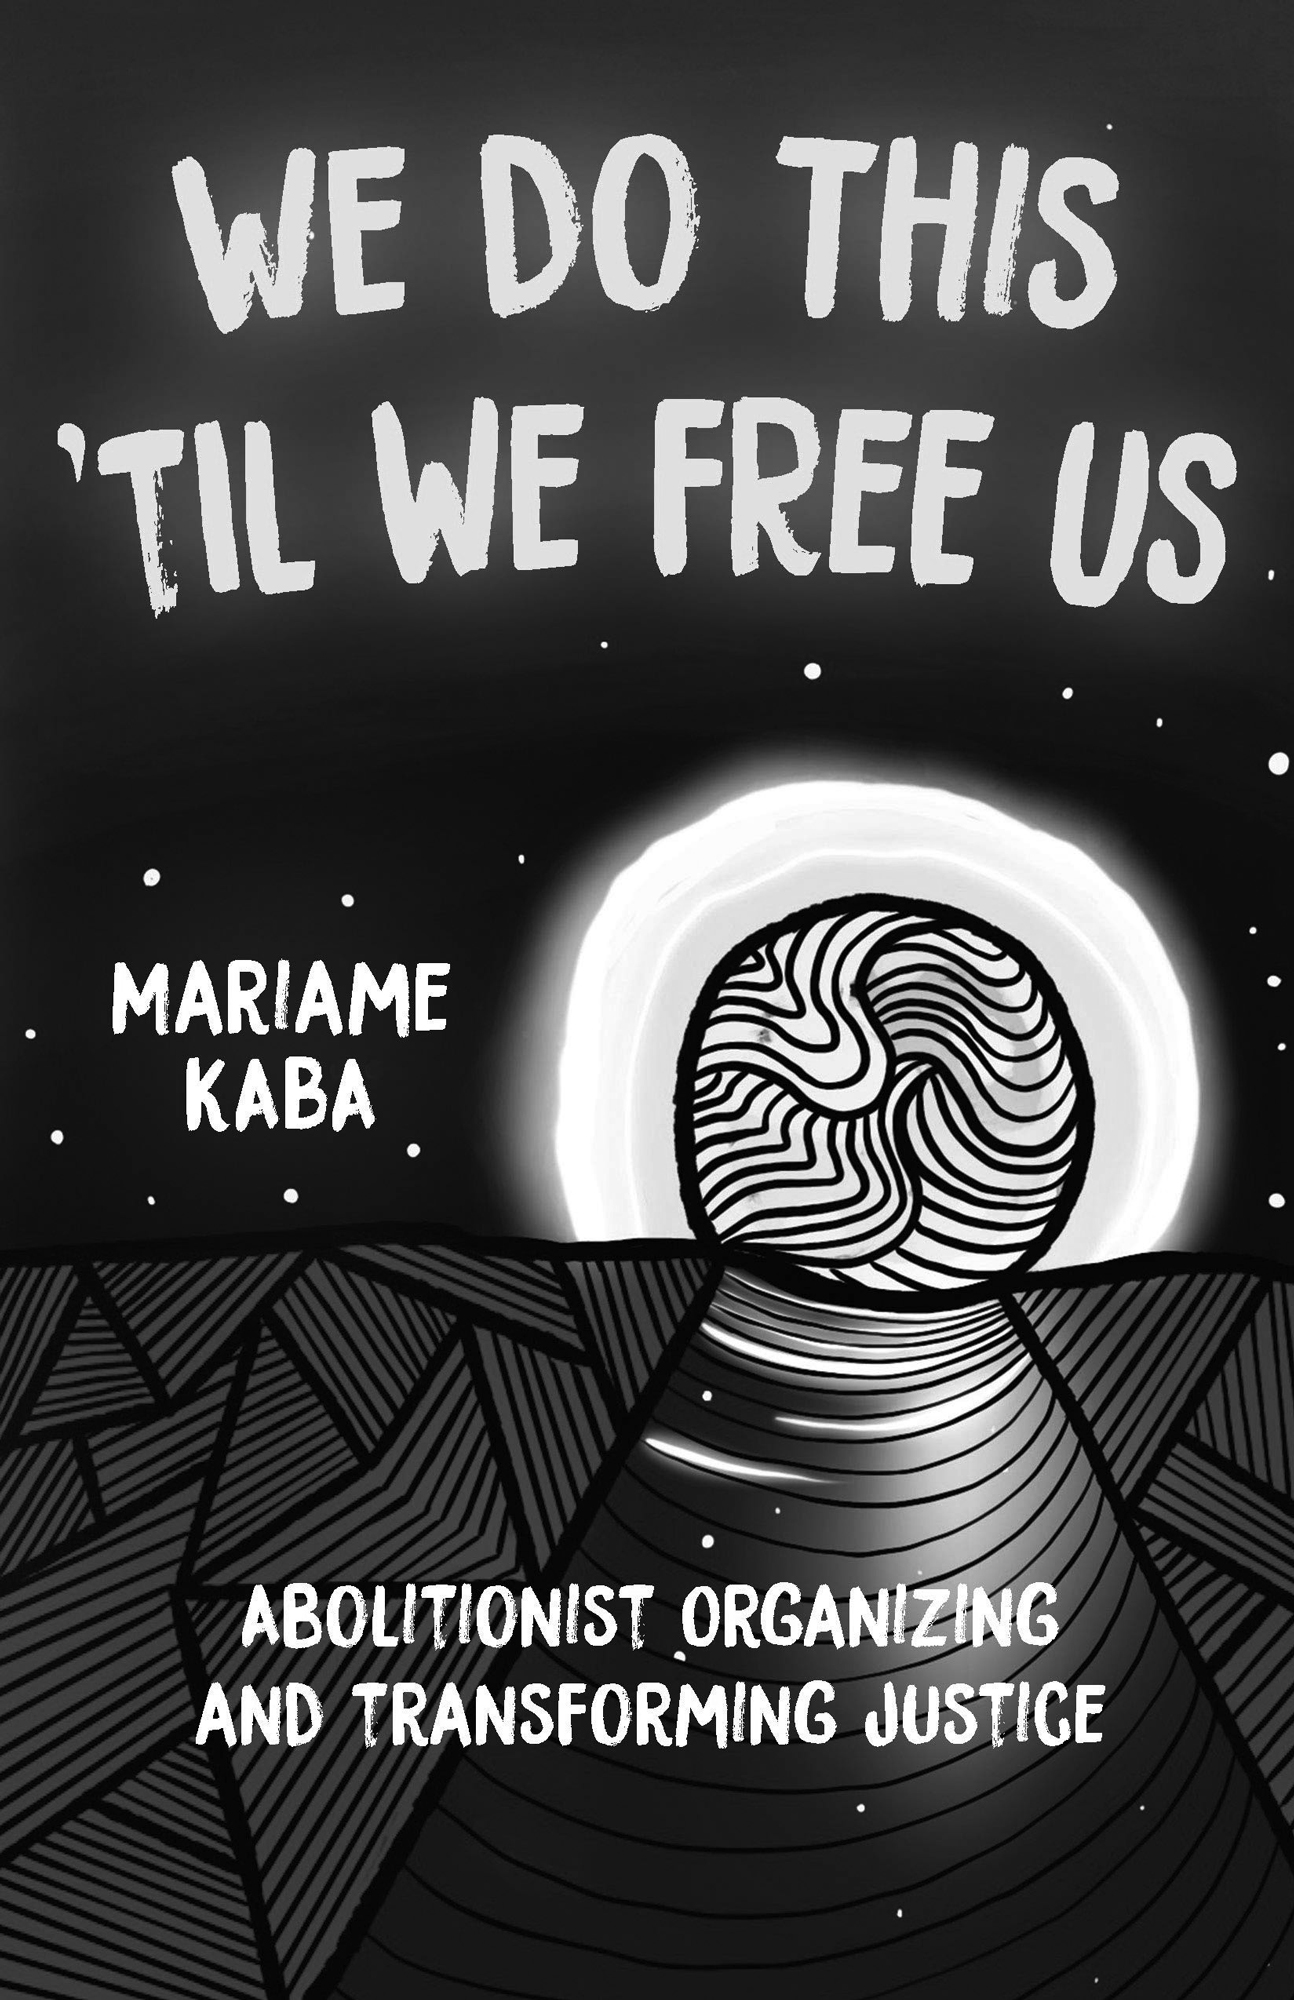 """Book cover for We Do This 'Til We Free Us: Abolitionist Organizing and Transforming Justice by Mariame Kaba. The cover looks like a road leading to a light at the end, and there are geometric patterns on the ground, with stars in the sky. The top reads """"We Do This 'Til We Free Us,"""" then center reads """"Mariame Kaba,"""" and then bottom reads """"Abolitionist Organizing and Transforming Justice."""""""